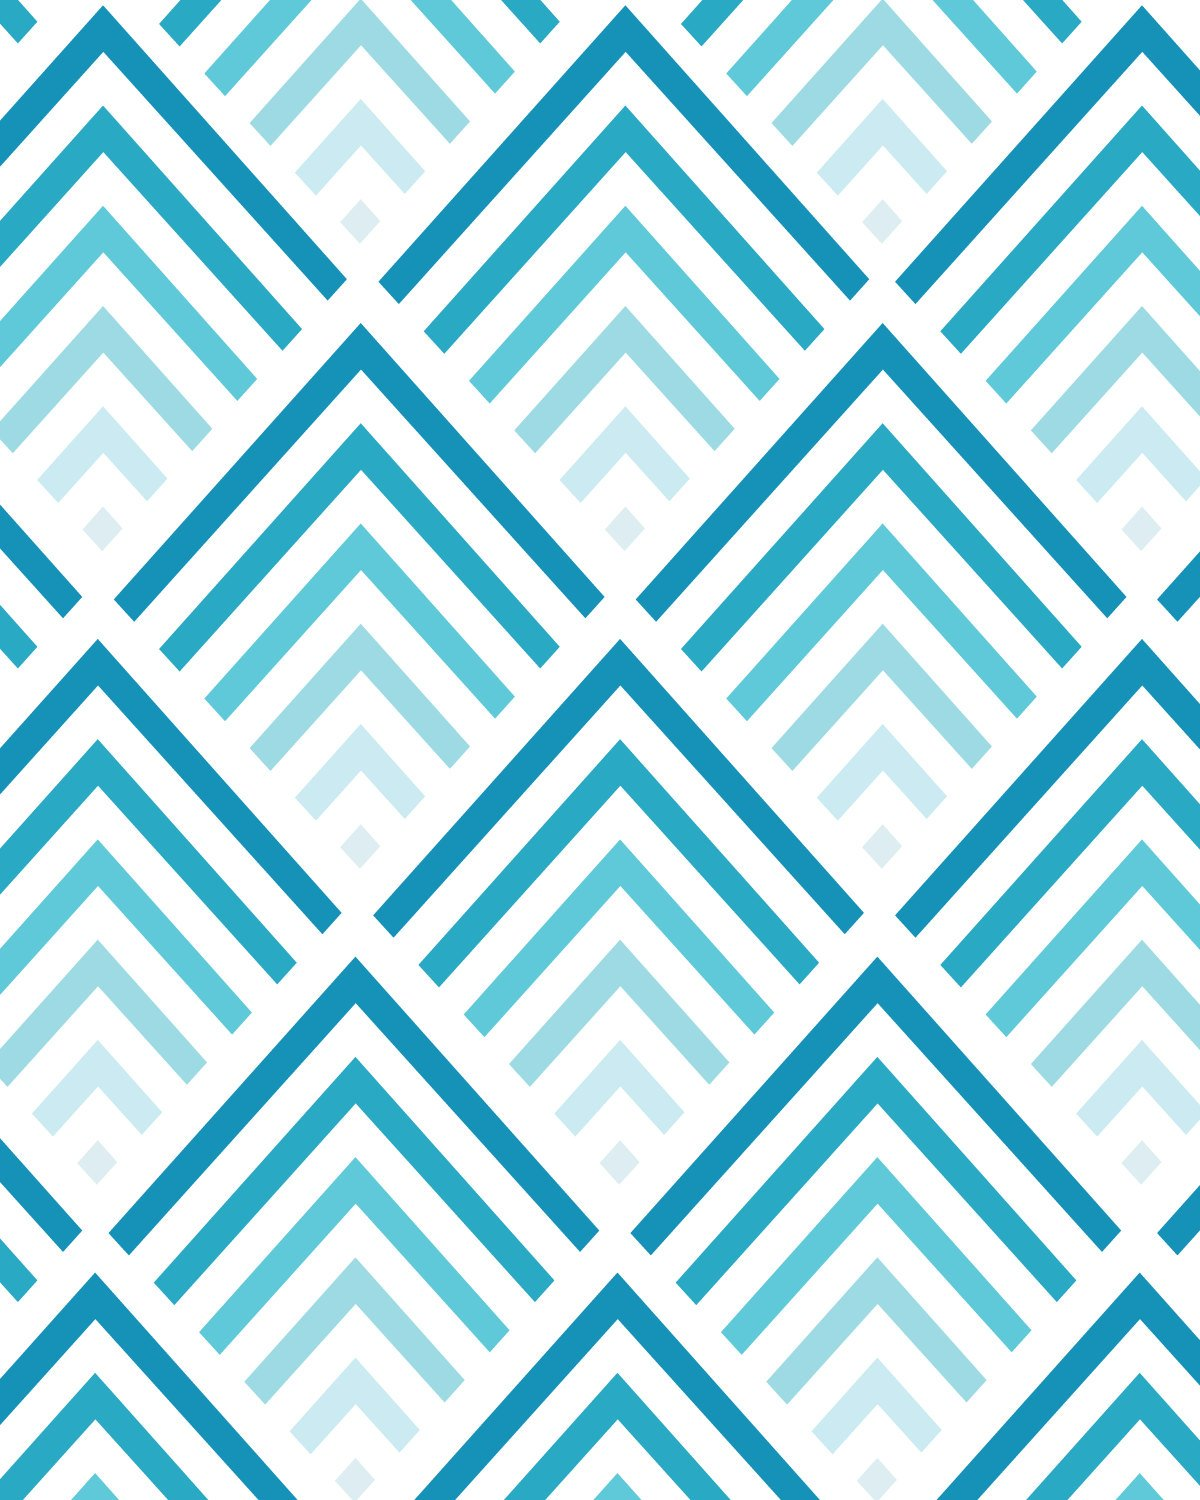 Chevron print background - Gul08s Teal And Coral Wallpapers Wallpapersafari Solid Desktop Backgrounds Chevron Print